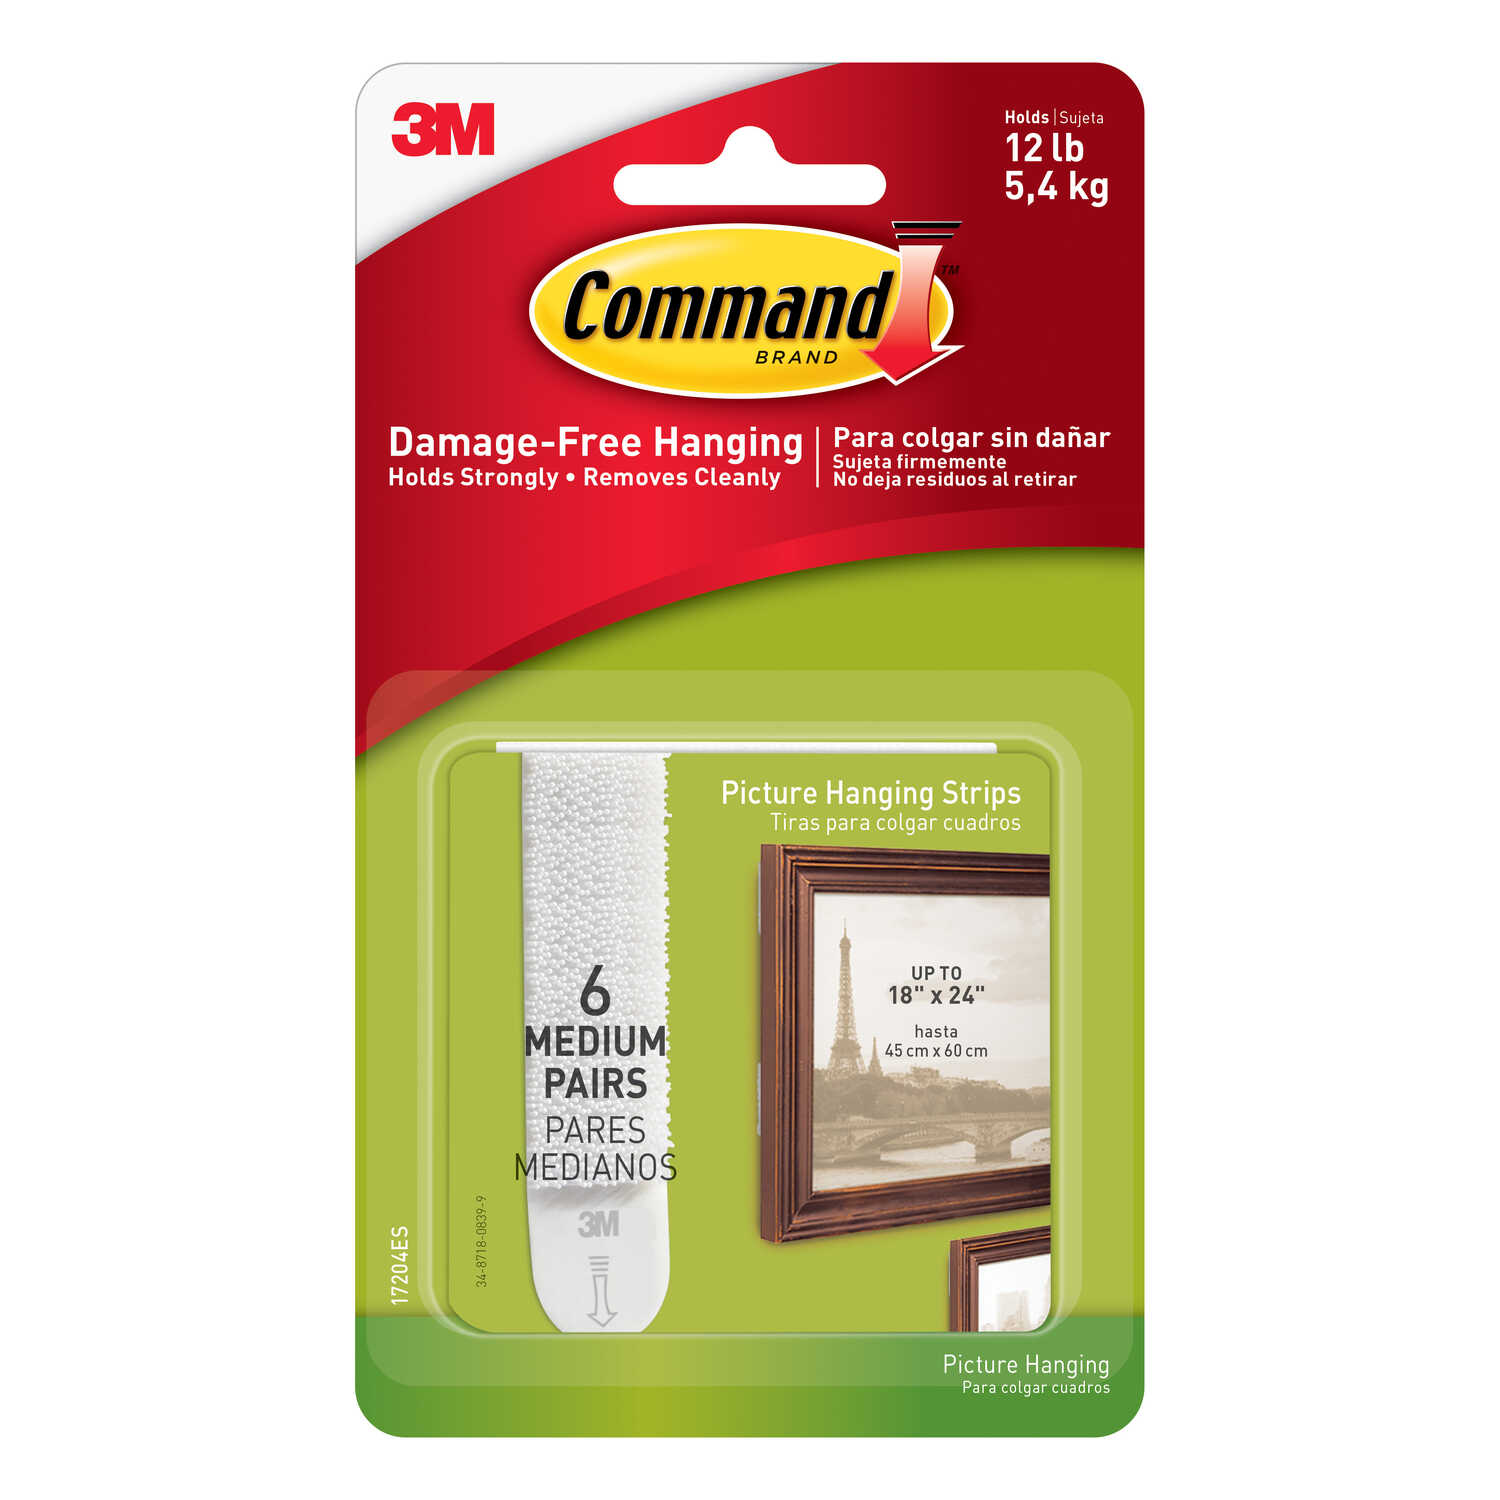 3M  Command  White  Picture Hanging Strips  12 lb. Foam  12 pk